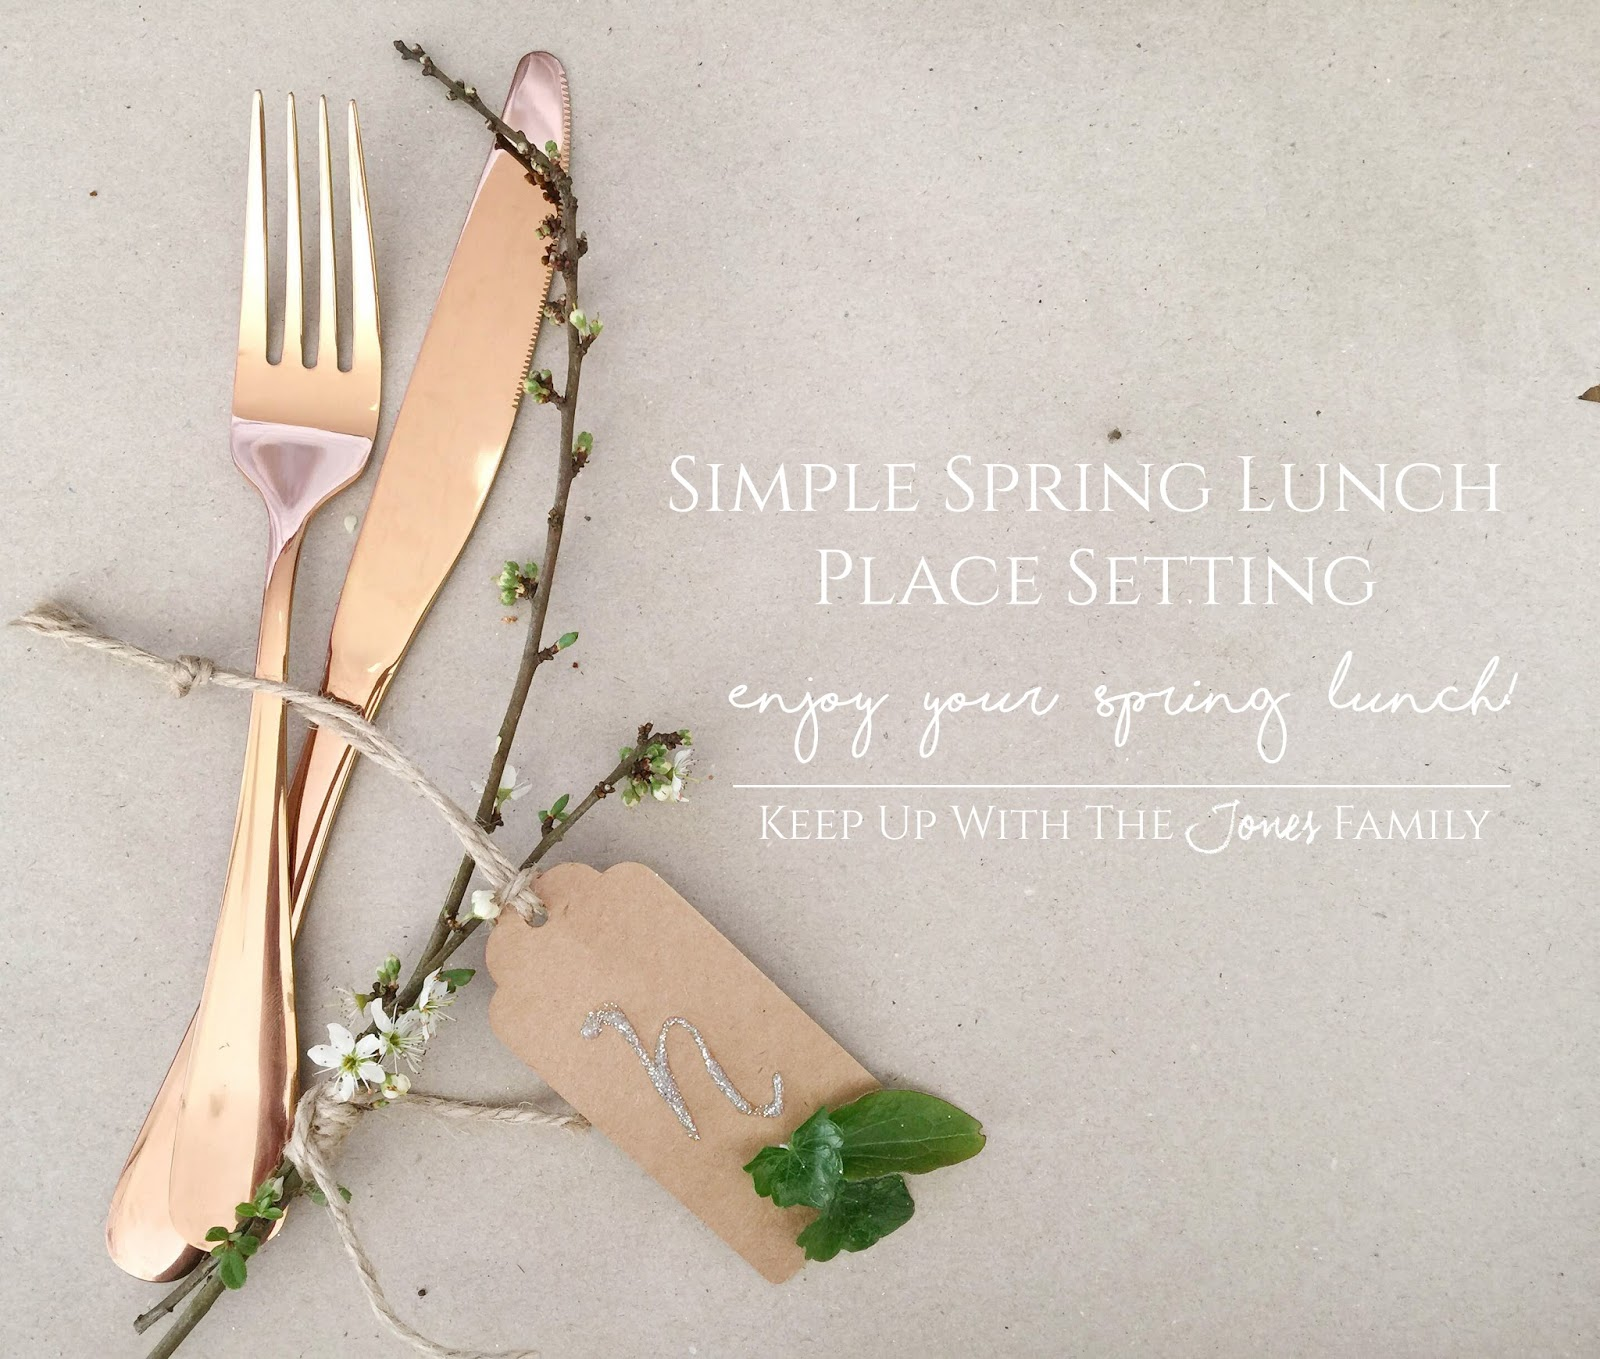 SPRING LUNCHES: SIMPLE PLACE SETTINGS